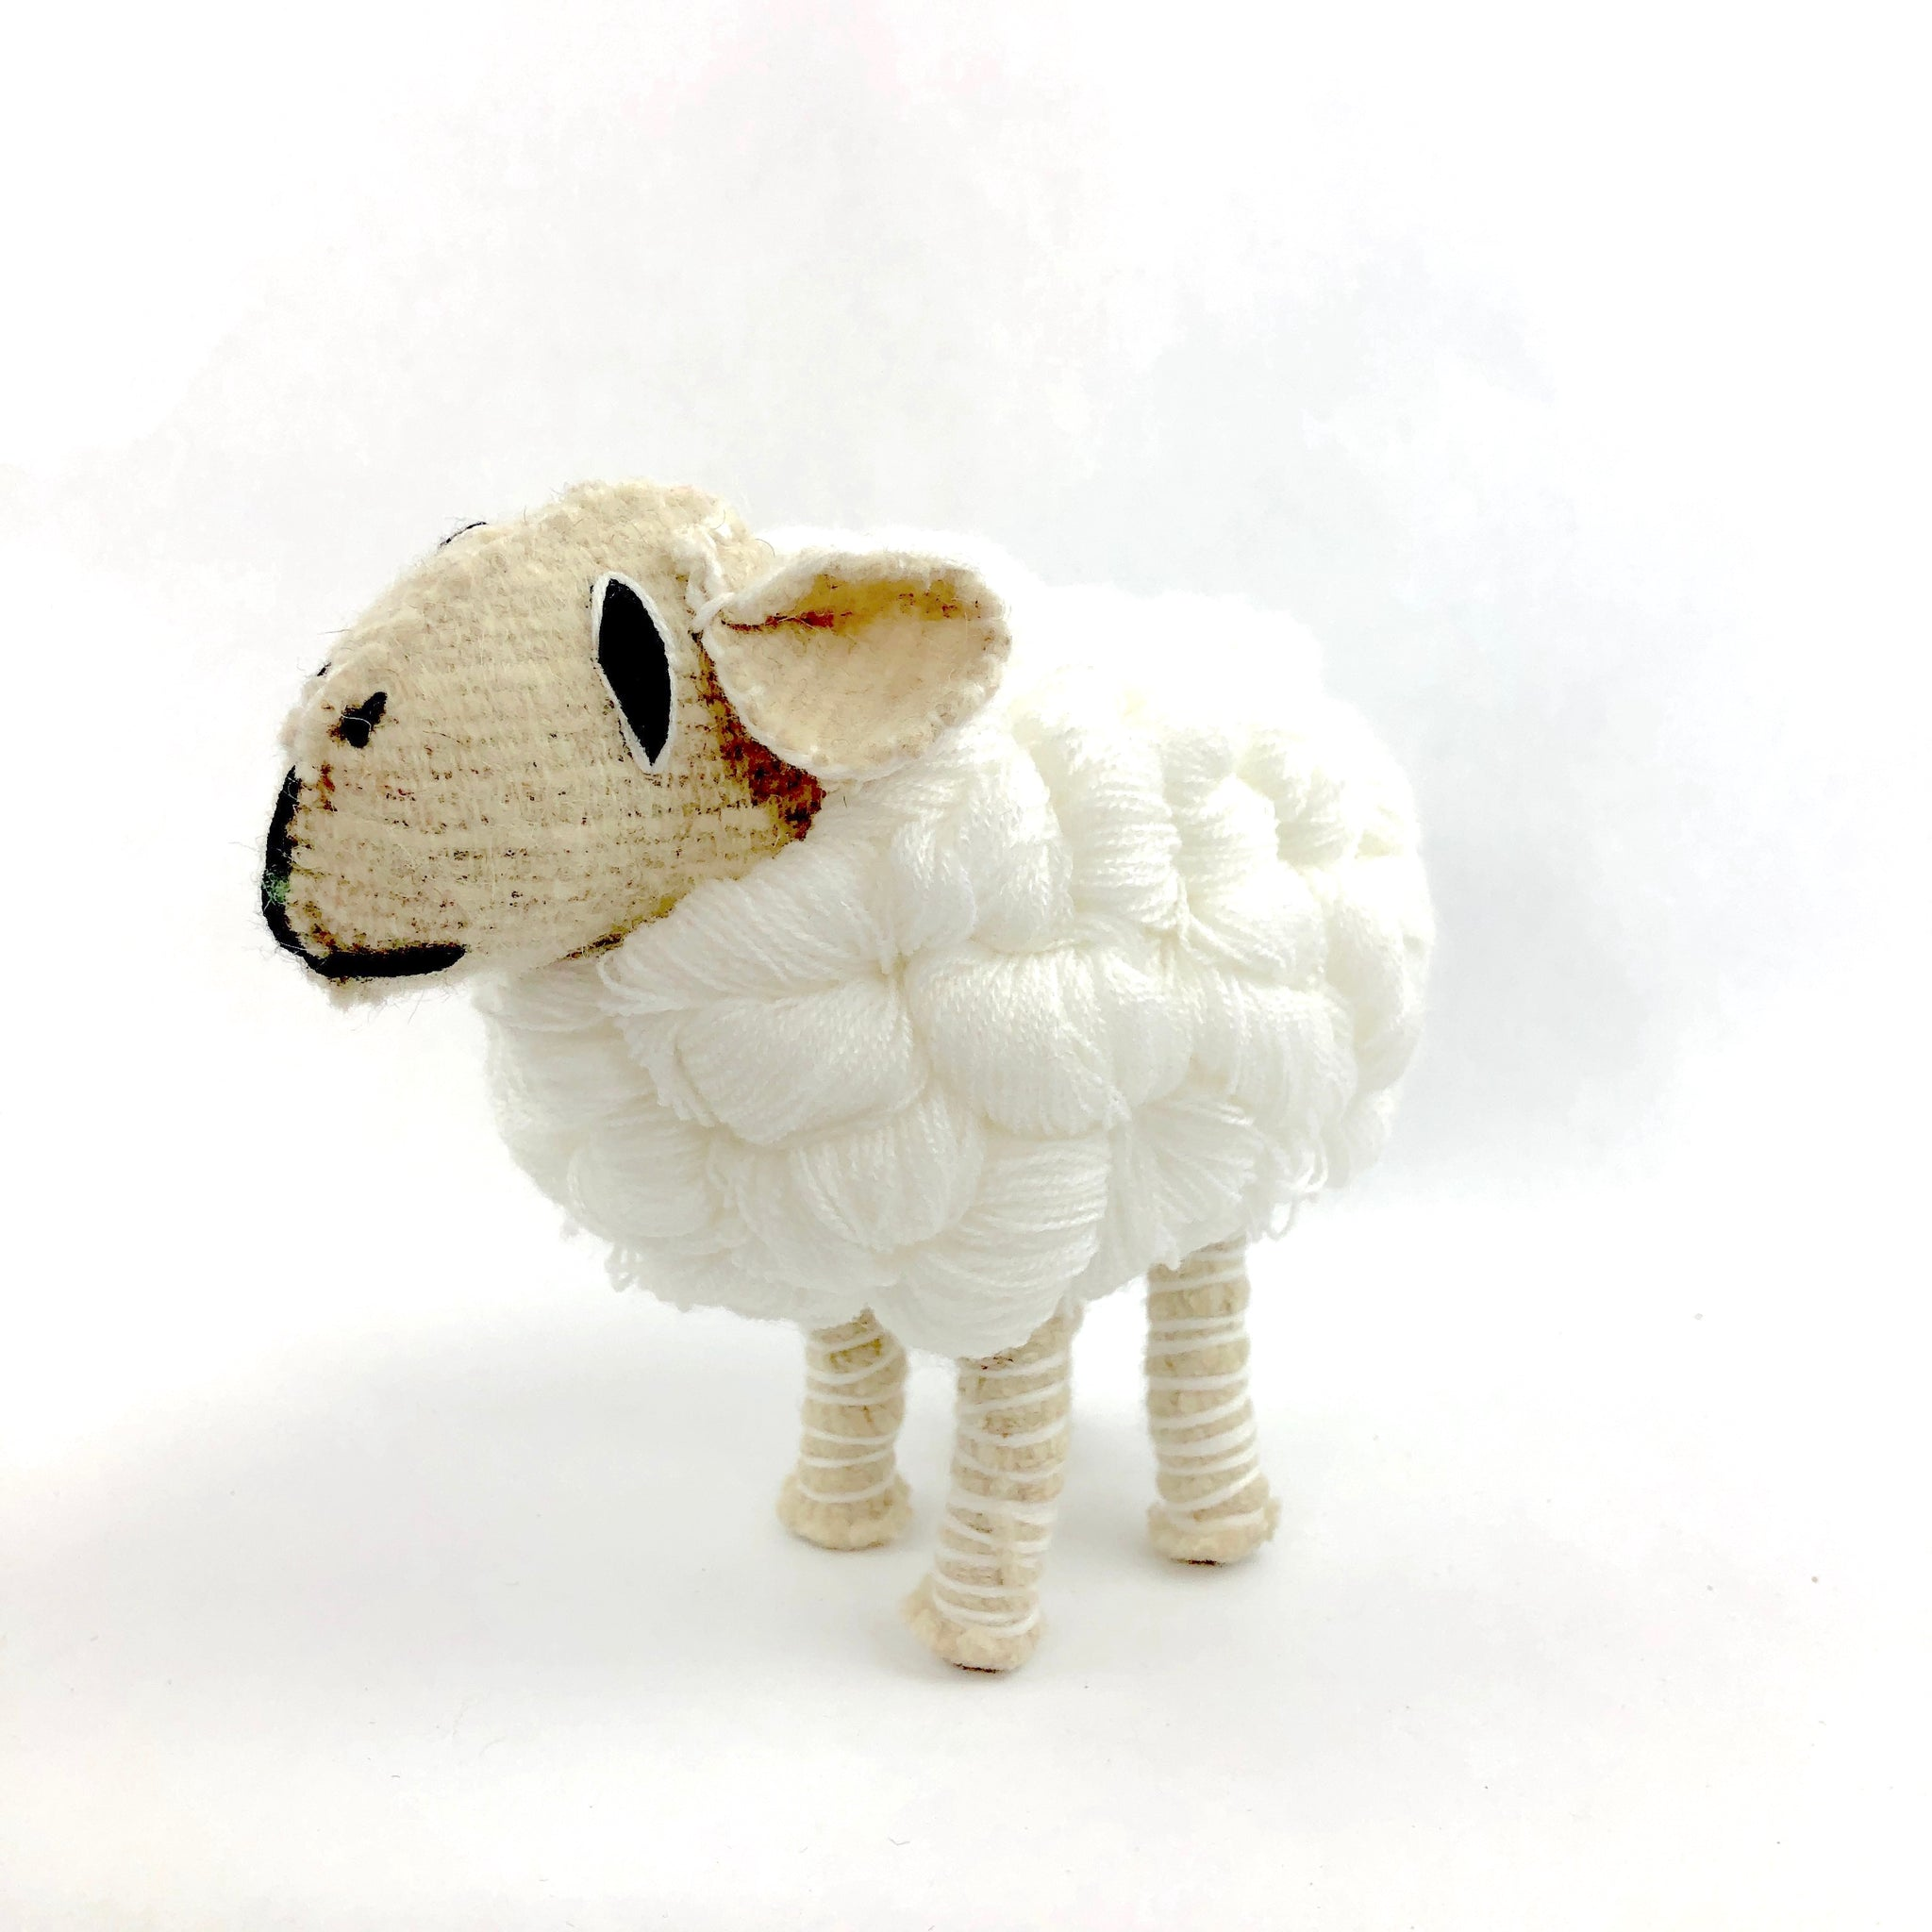 Mexican folk art animal, sheep, fair trade sheep